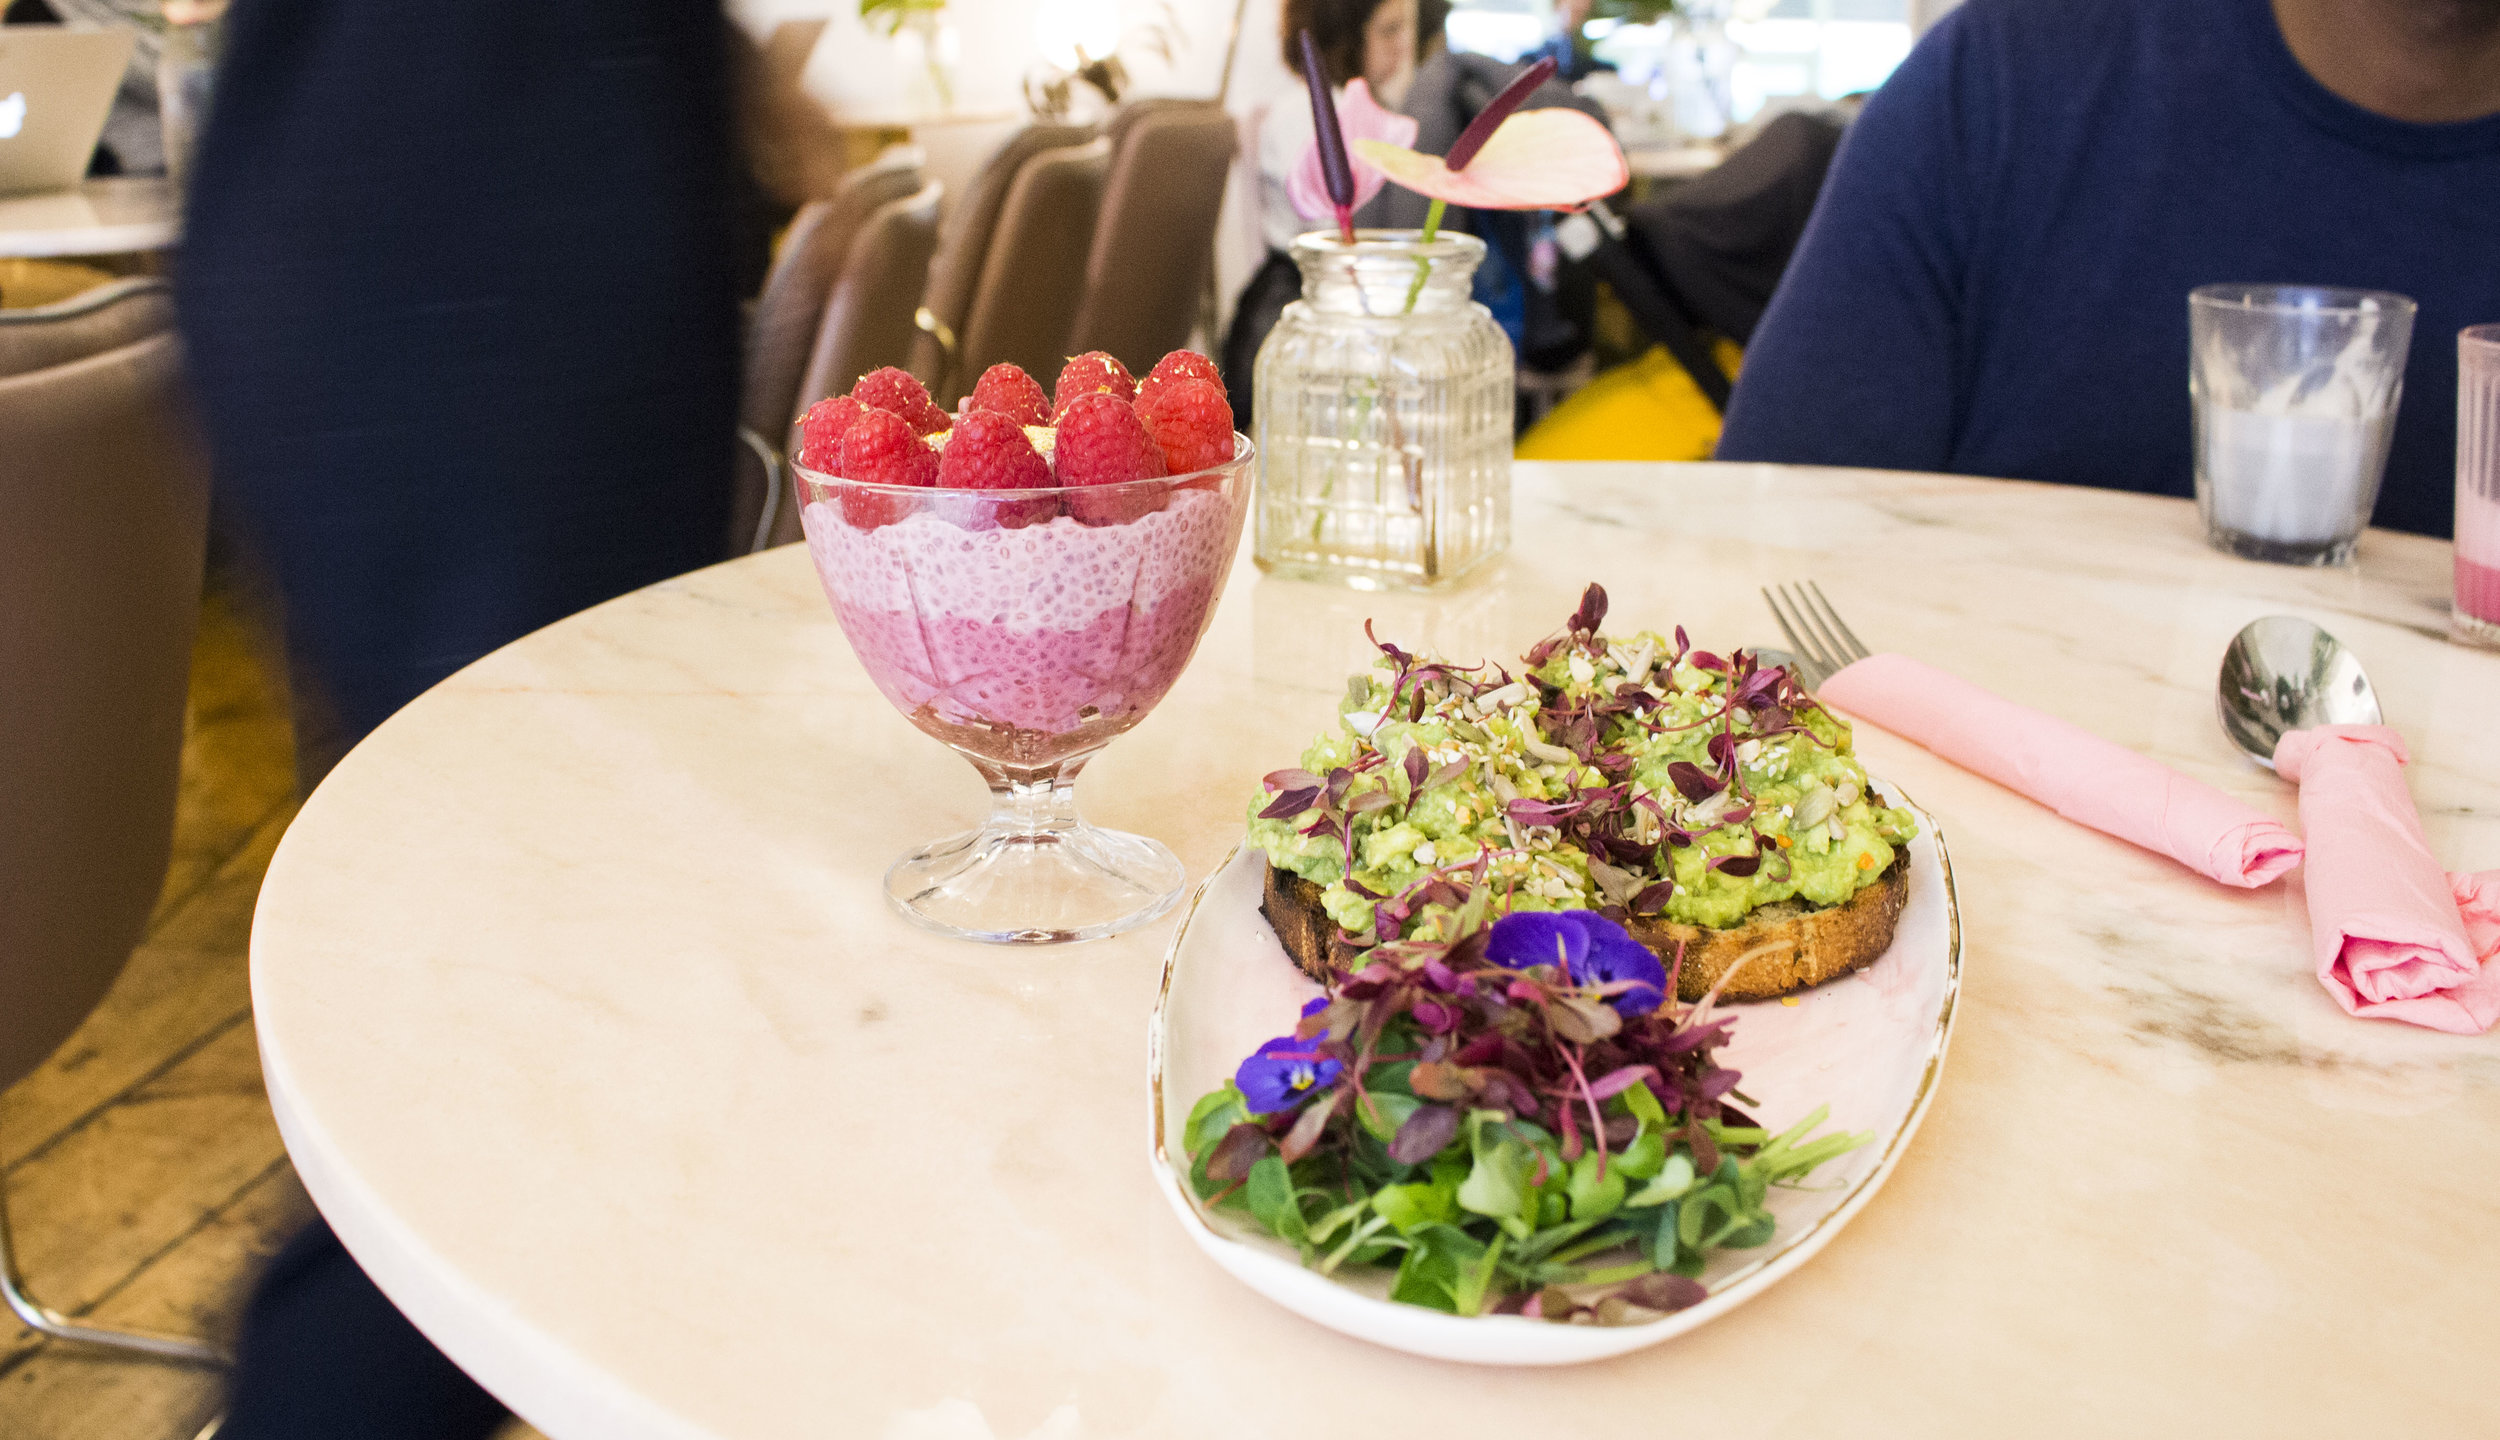 Avo toast and Pink Ombre Chia Pudding - so pretty and tastes amazing!